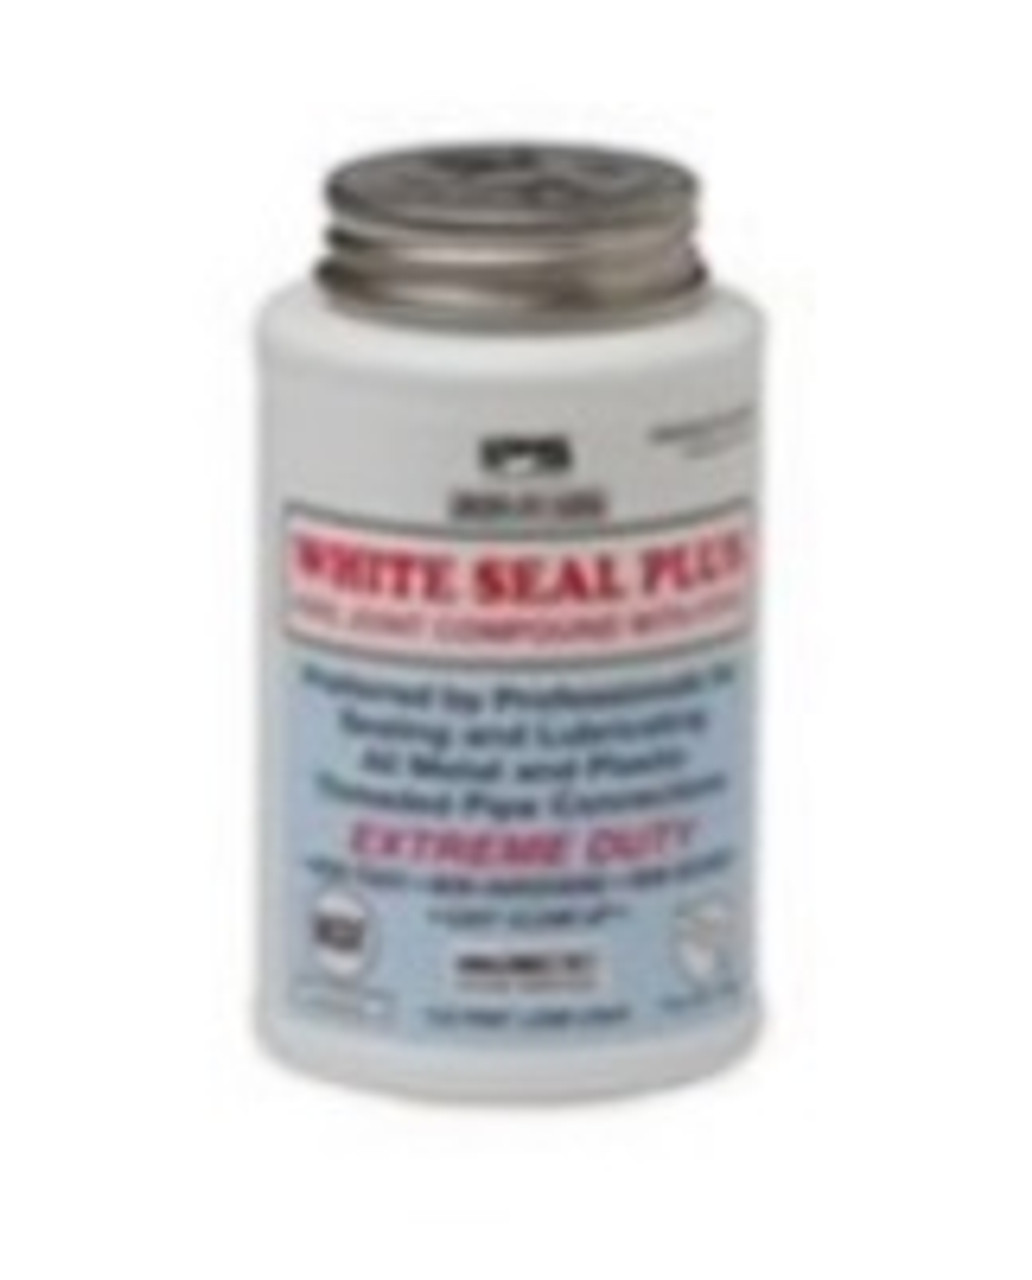 1/4 PINT WHITE SEAL PLUS w/PTFE